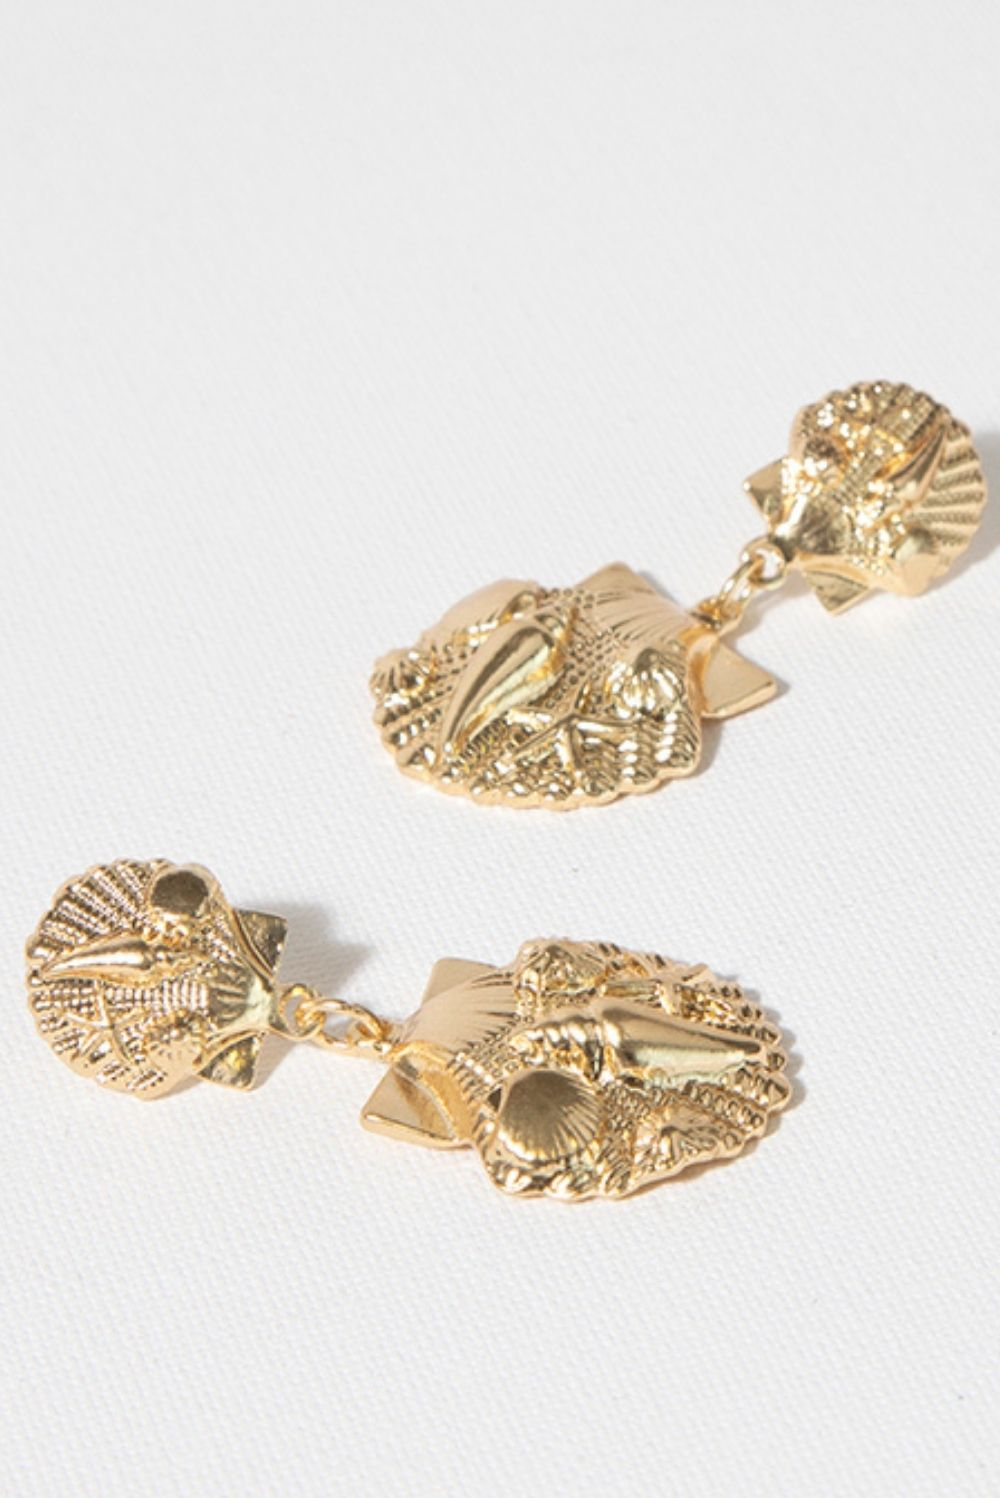 Marine Life Earrings In Gold